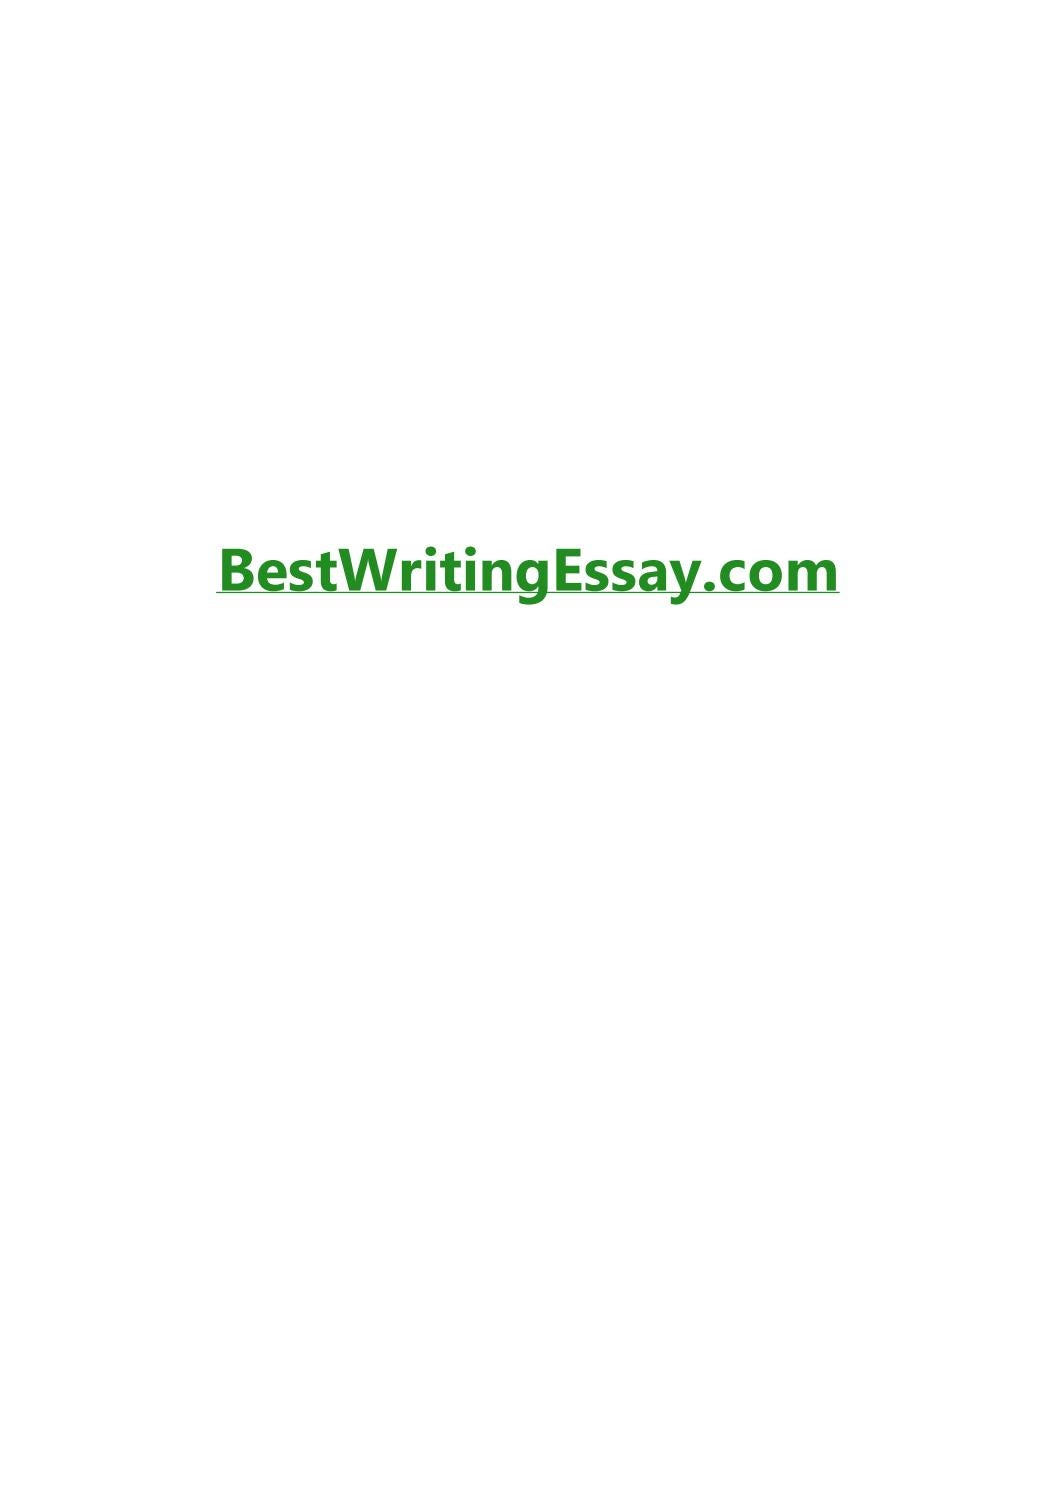 Thesis Statement For Analytical Essay  College Goals Essay also What Is A Thesis In An Essay How To Write An Autobiography Essay Example By Craigdhod  Health Care Essay Topics